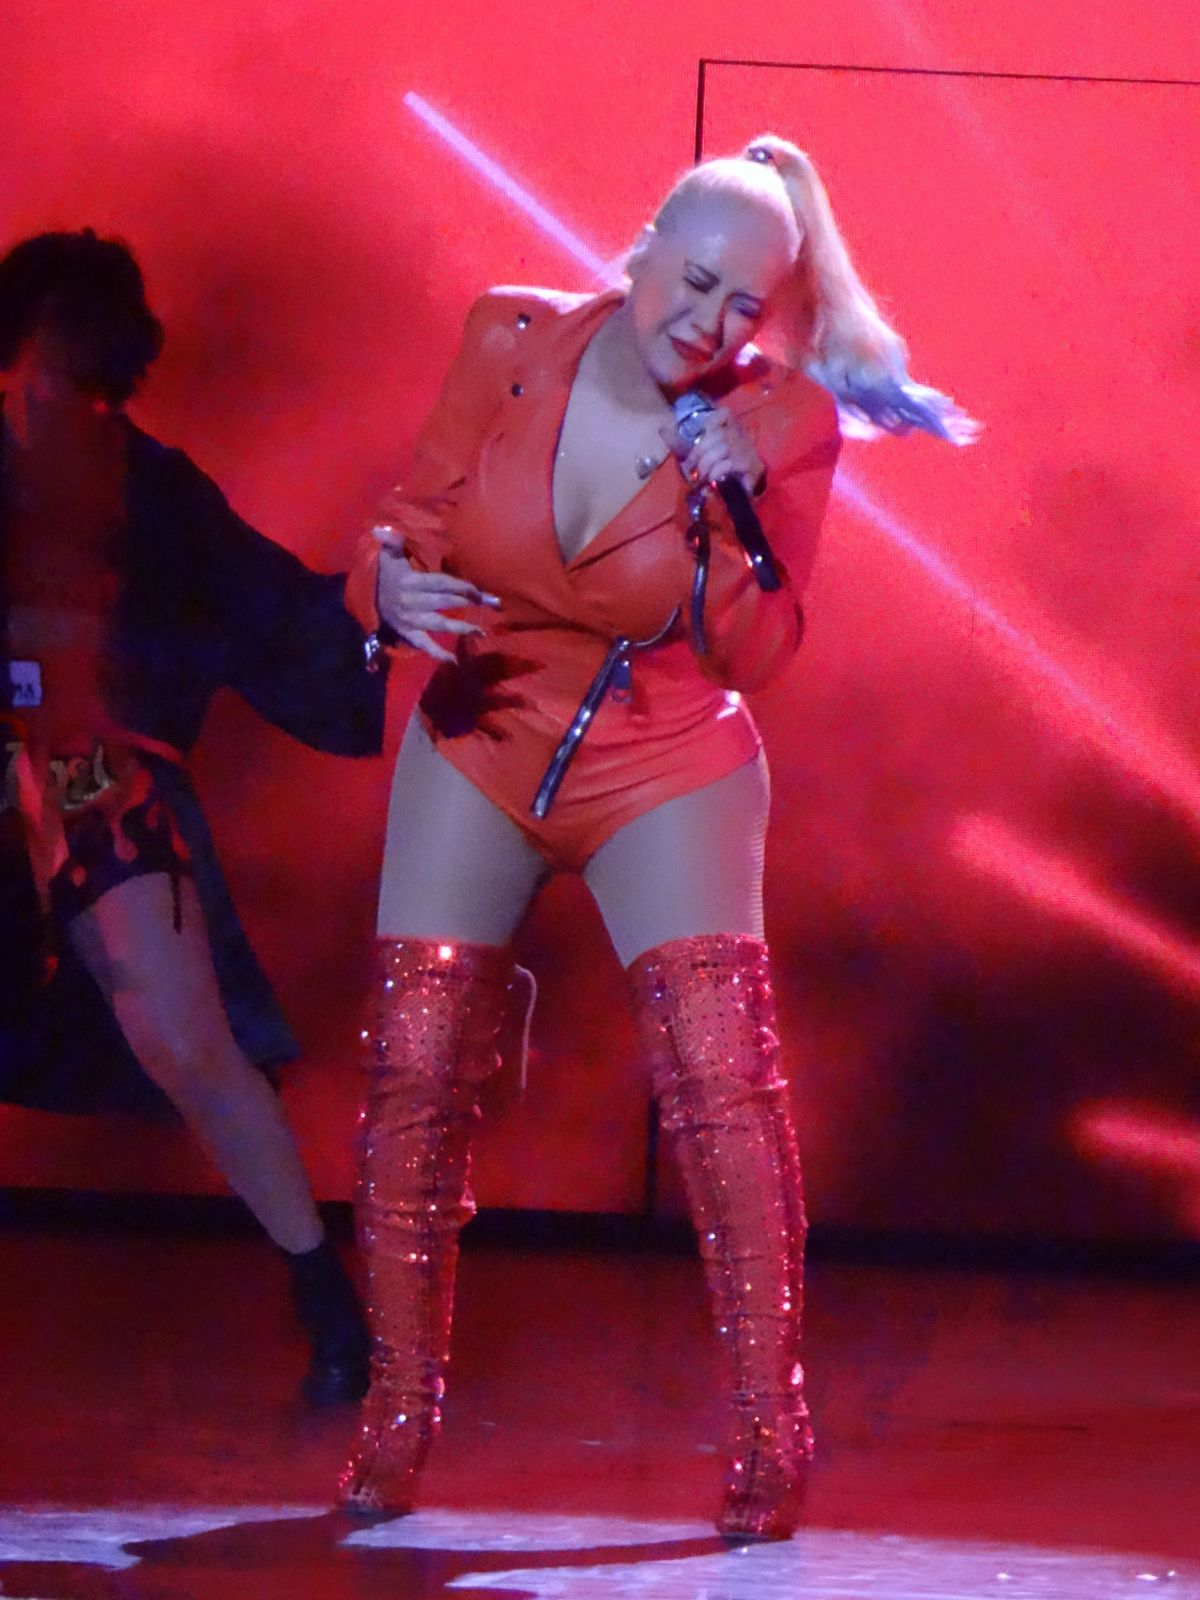 christina-aguilera-performs-at-a-concert